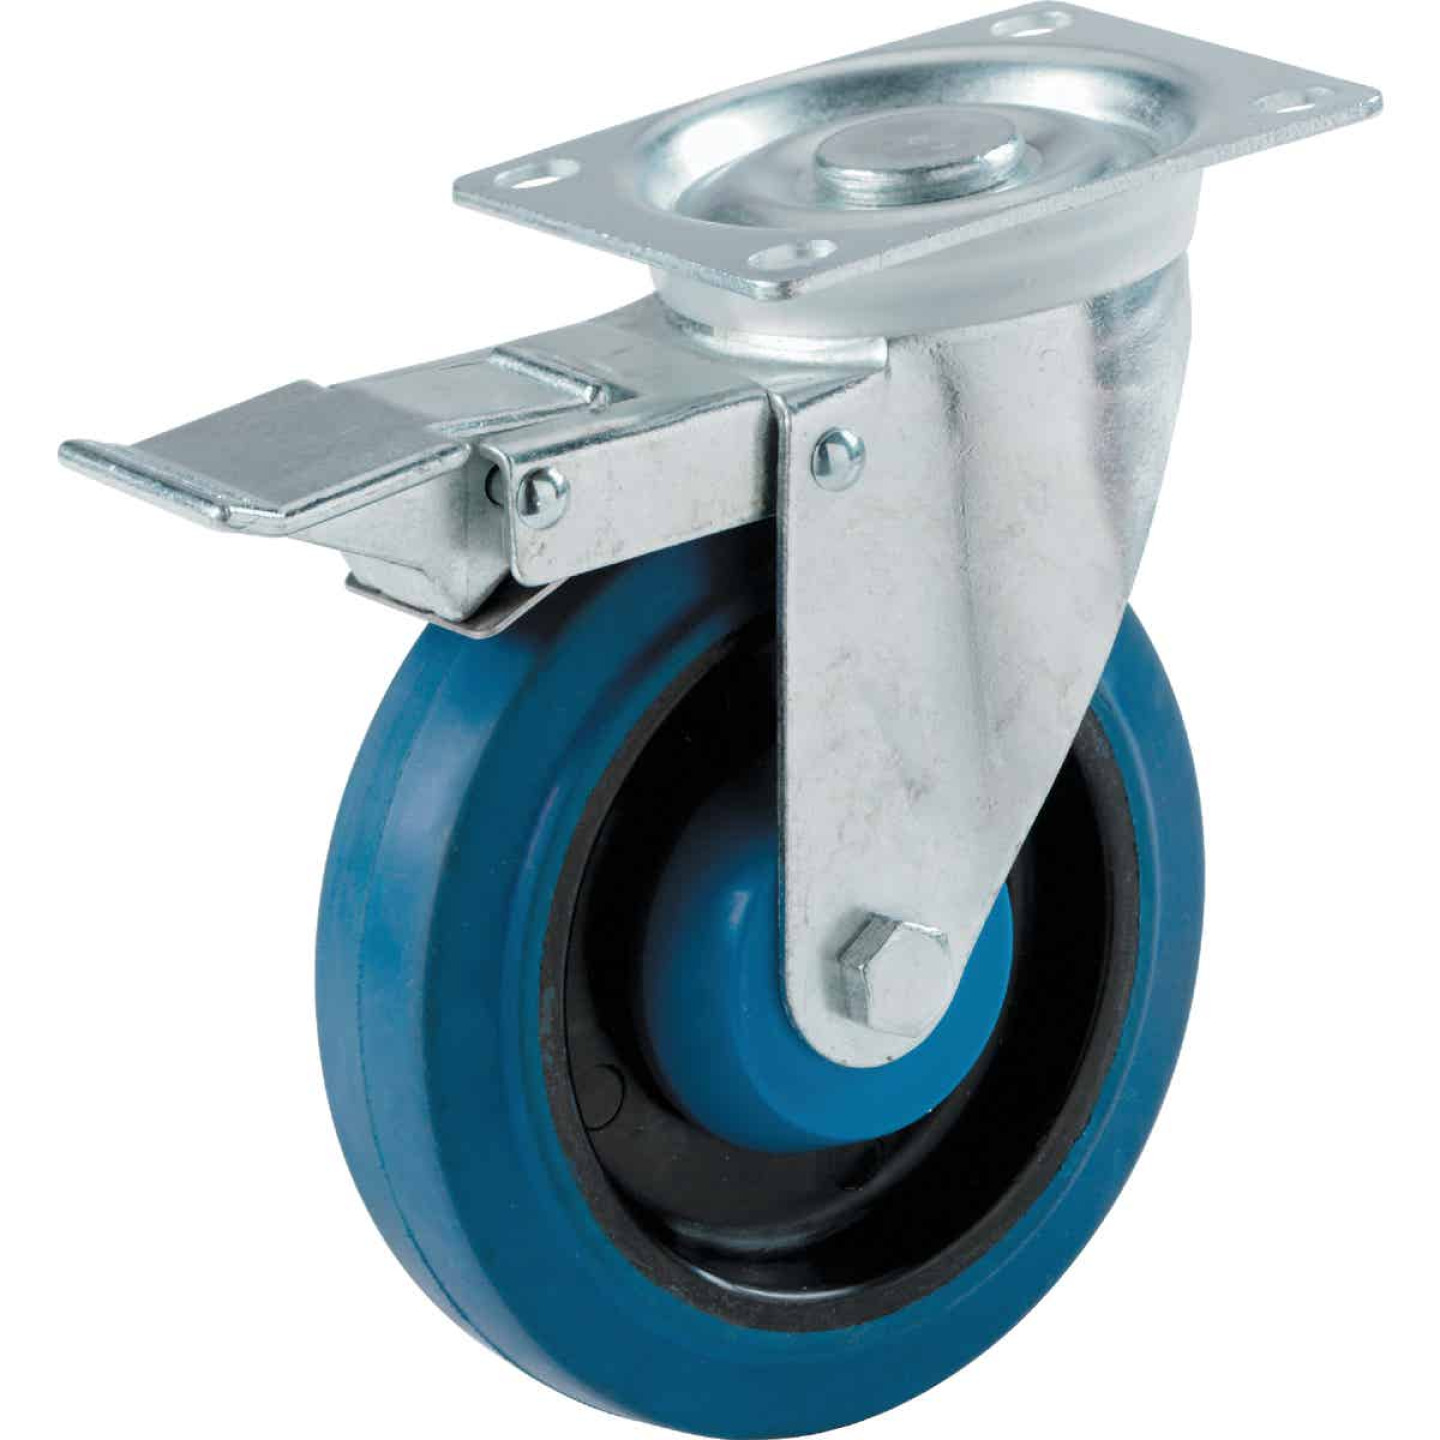 Shepherd 4 In. Elastic Rubber General-Duty Swivel Plate Caster with Brake Image 1